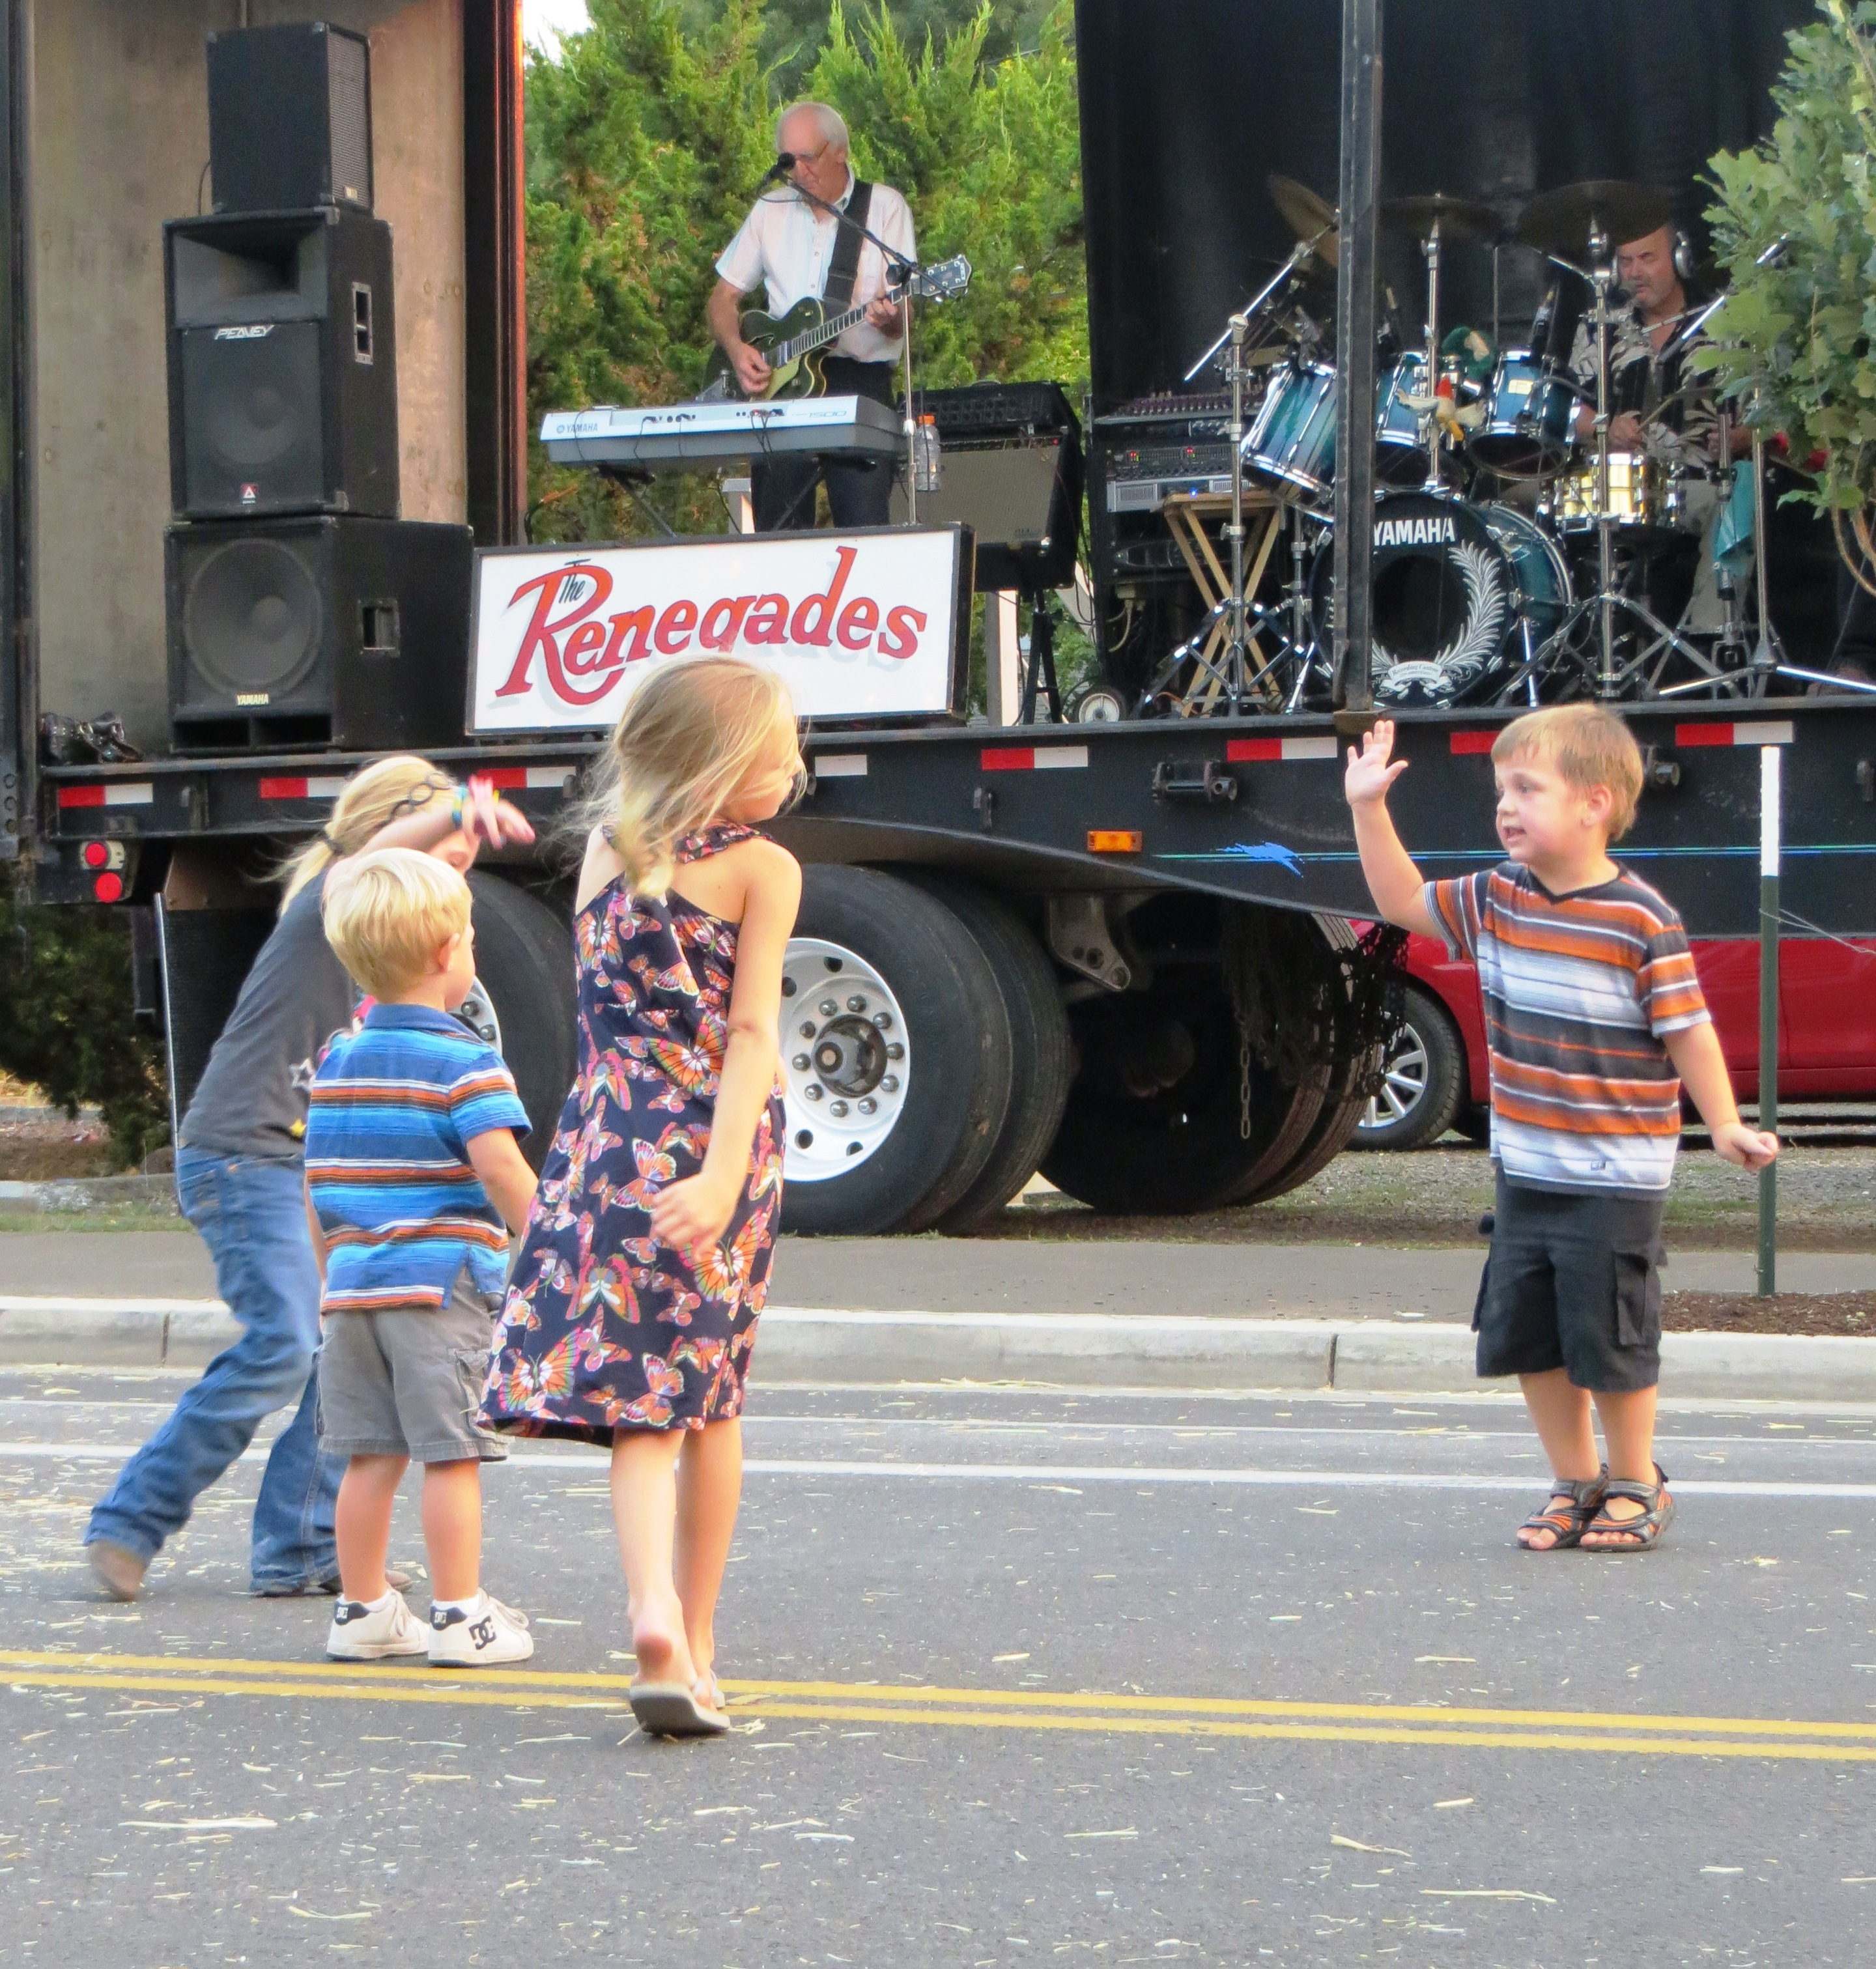 All ages enjoy the band.